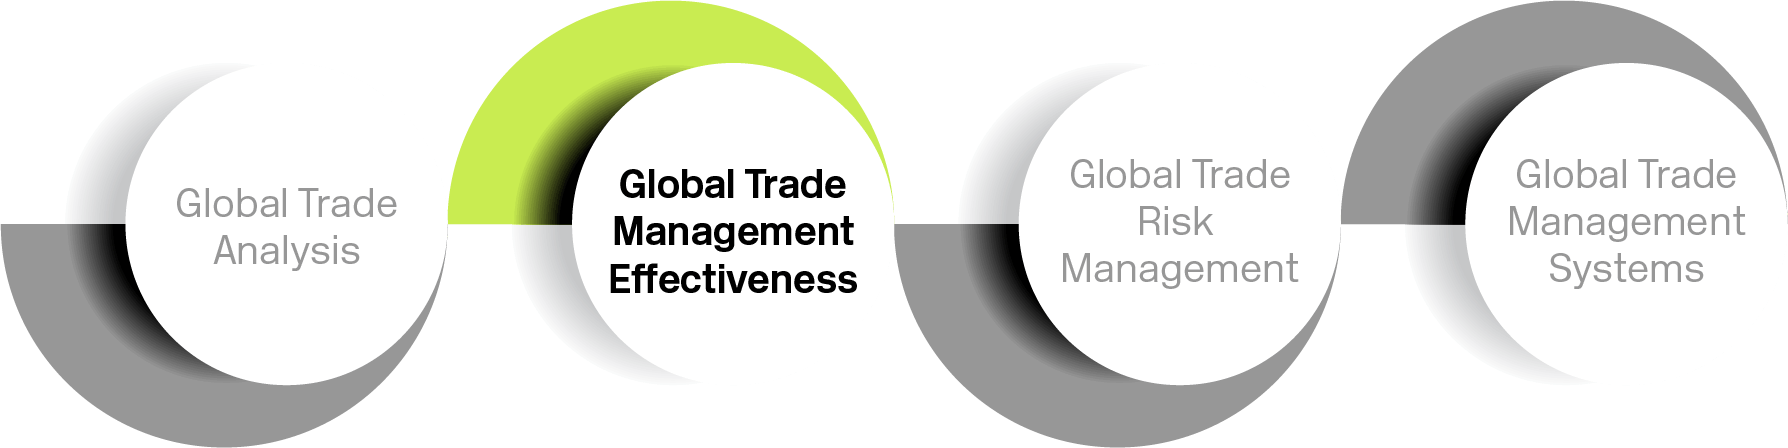 Global trade management effectiveness graphic